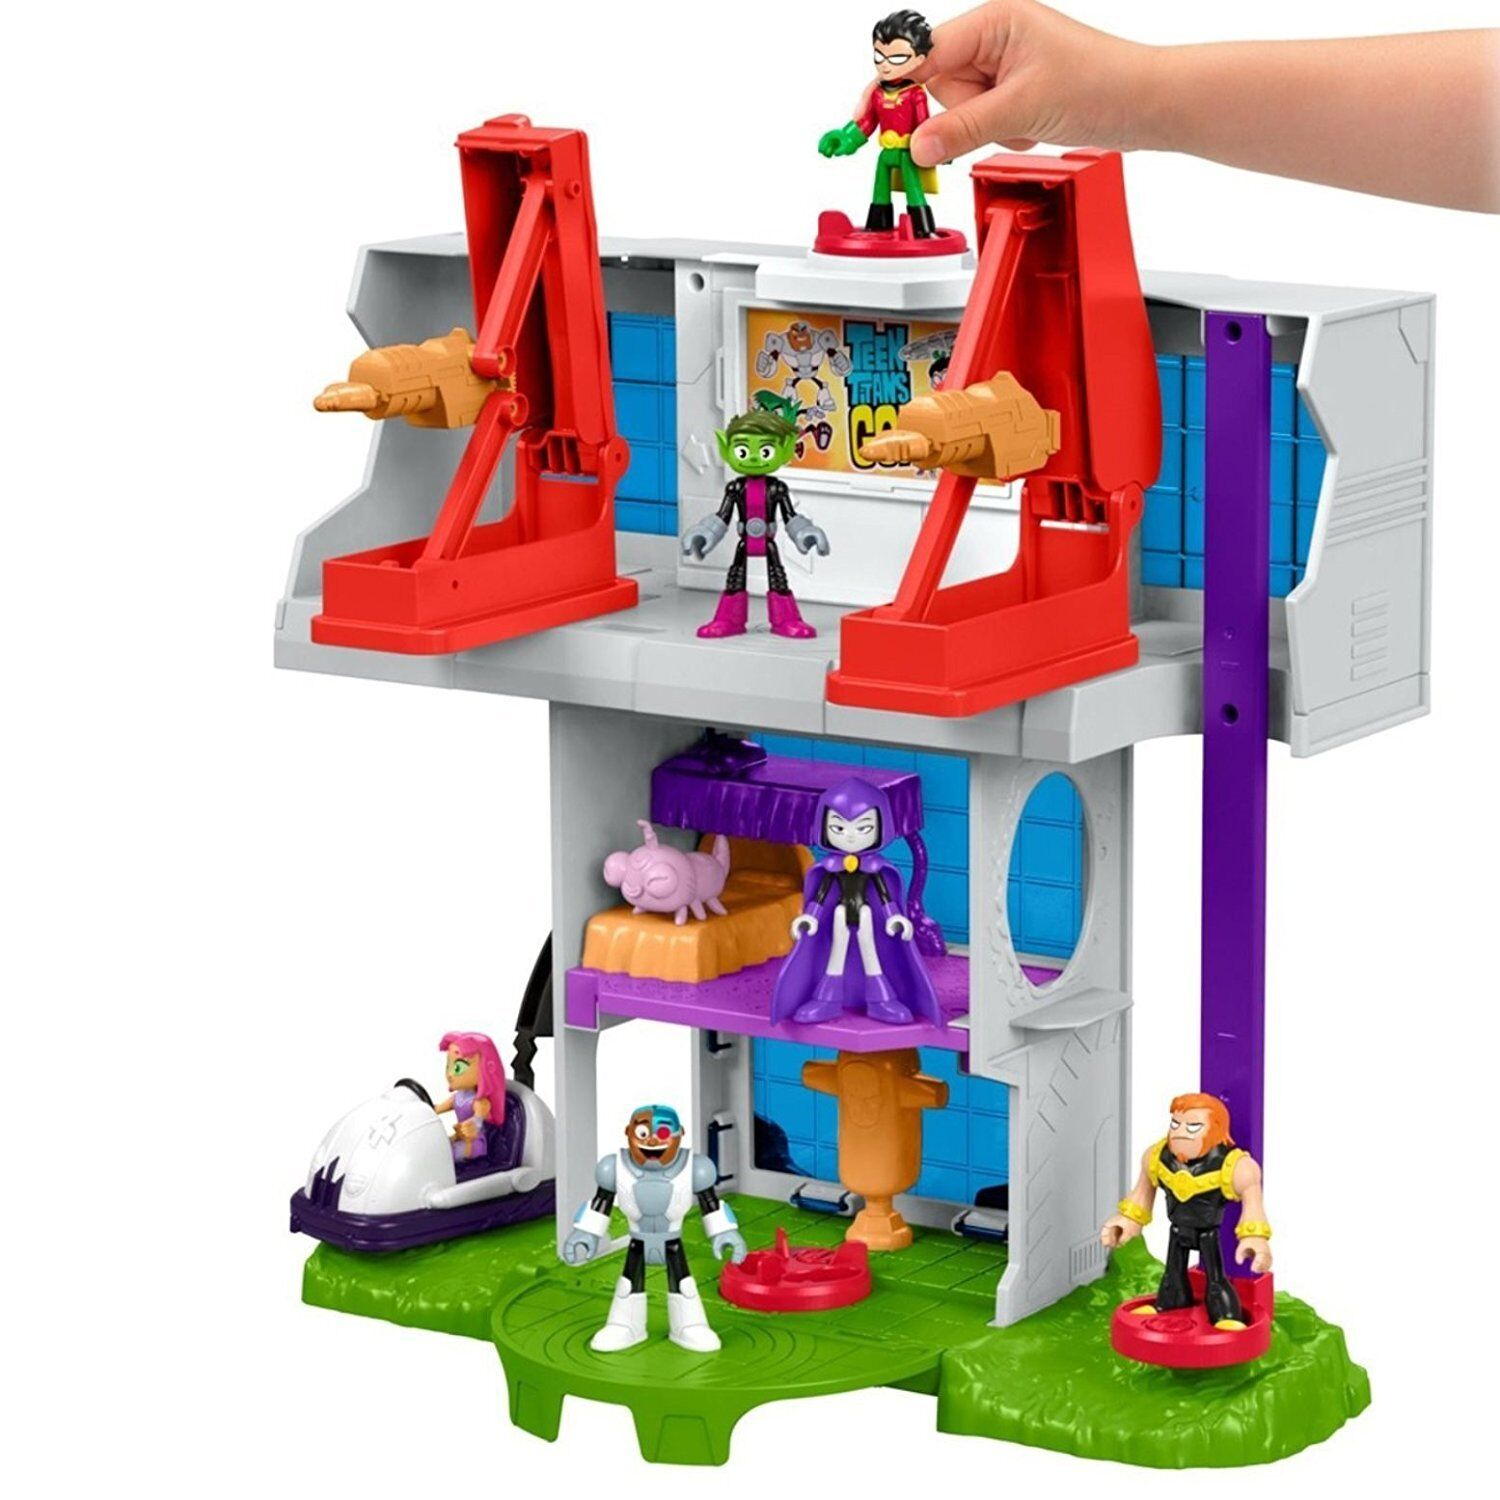 Teen - titanen tower playset fisher - price imaginext robin mammut geist & mehr